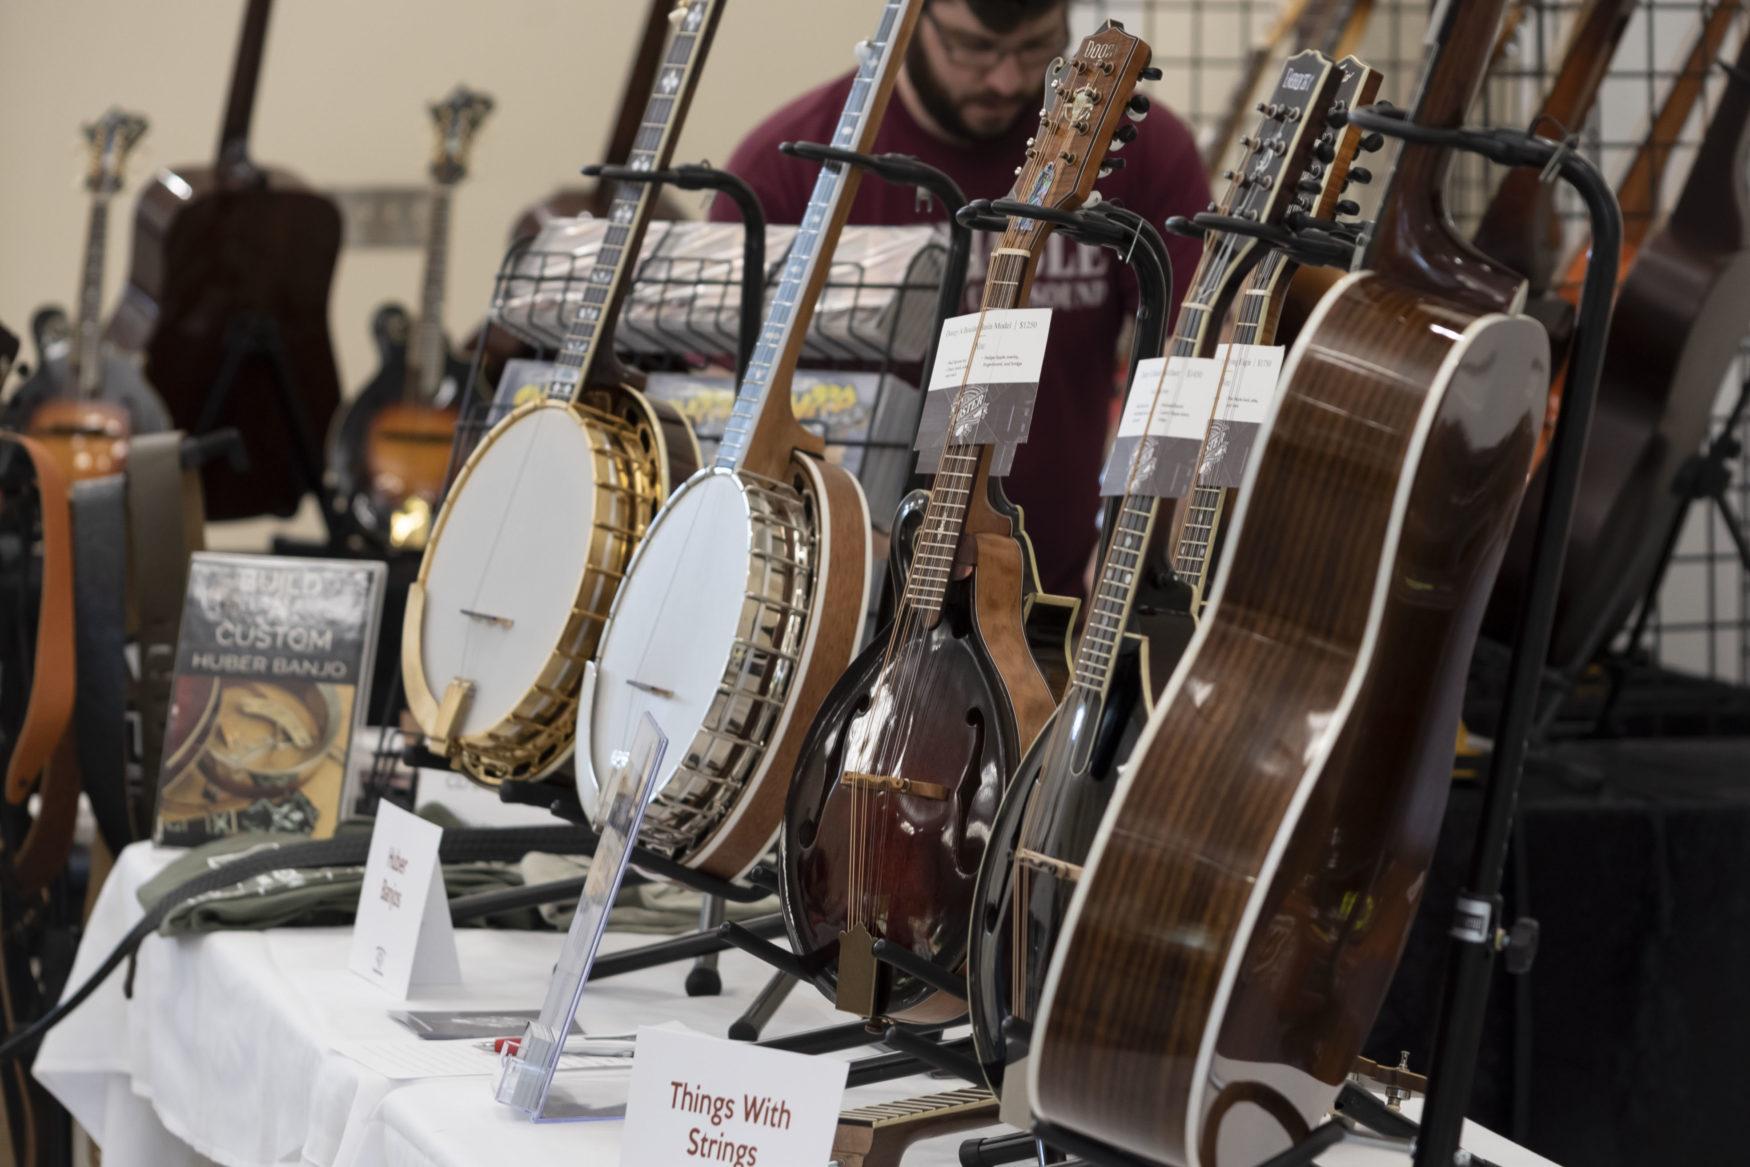 Instruments for sale at 2021 Fiddlers Convention